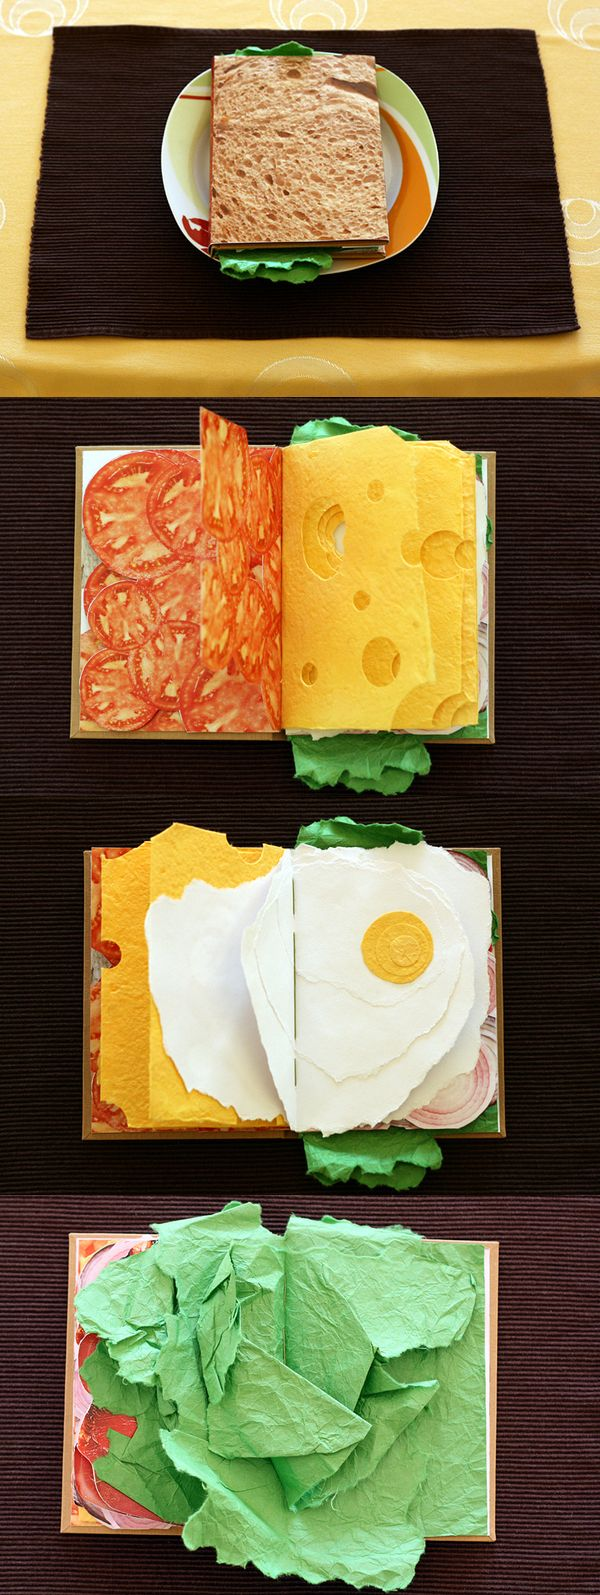 Sandwich Book by Pawel Piotrowski. 16 Creative Packaging Examples. #packaging…